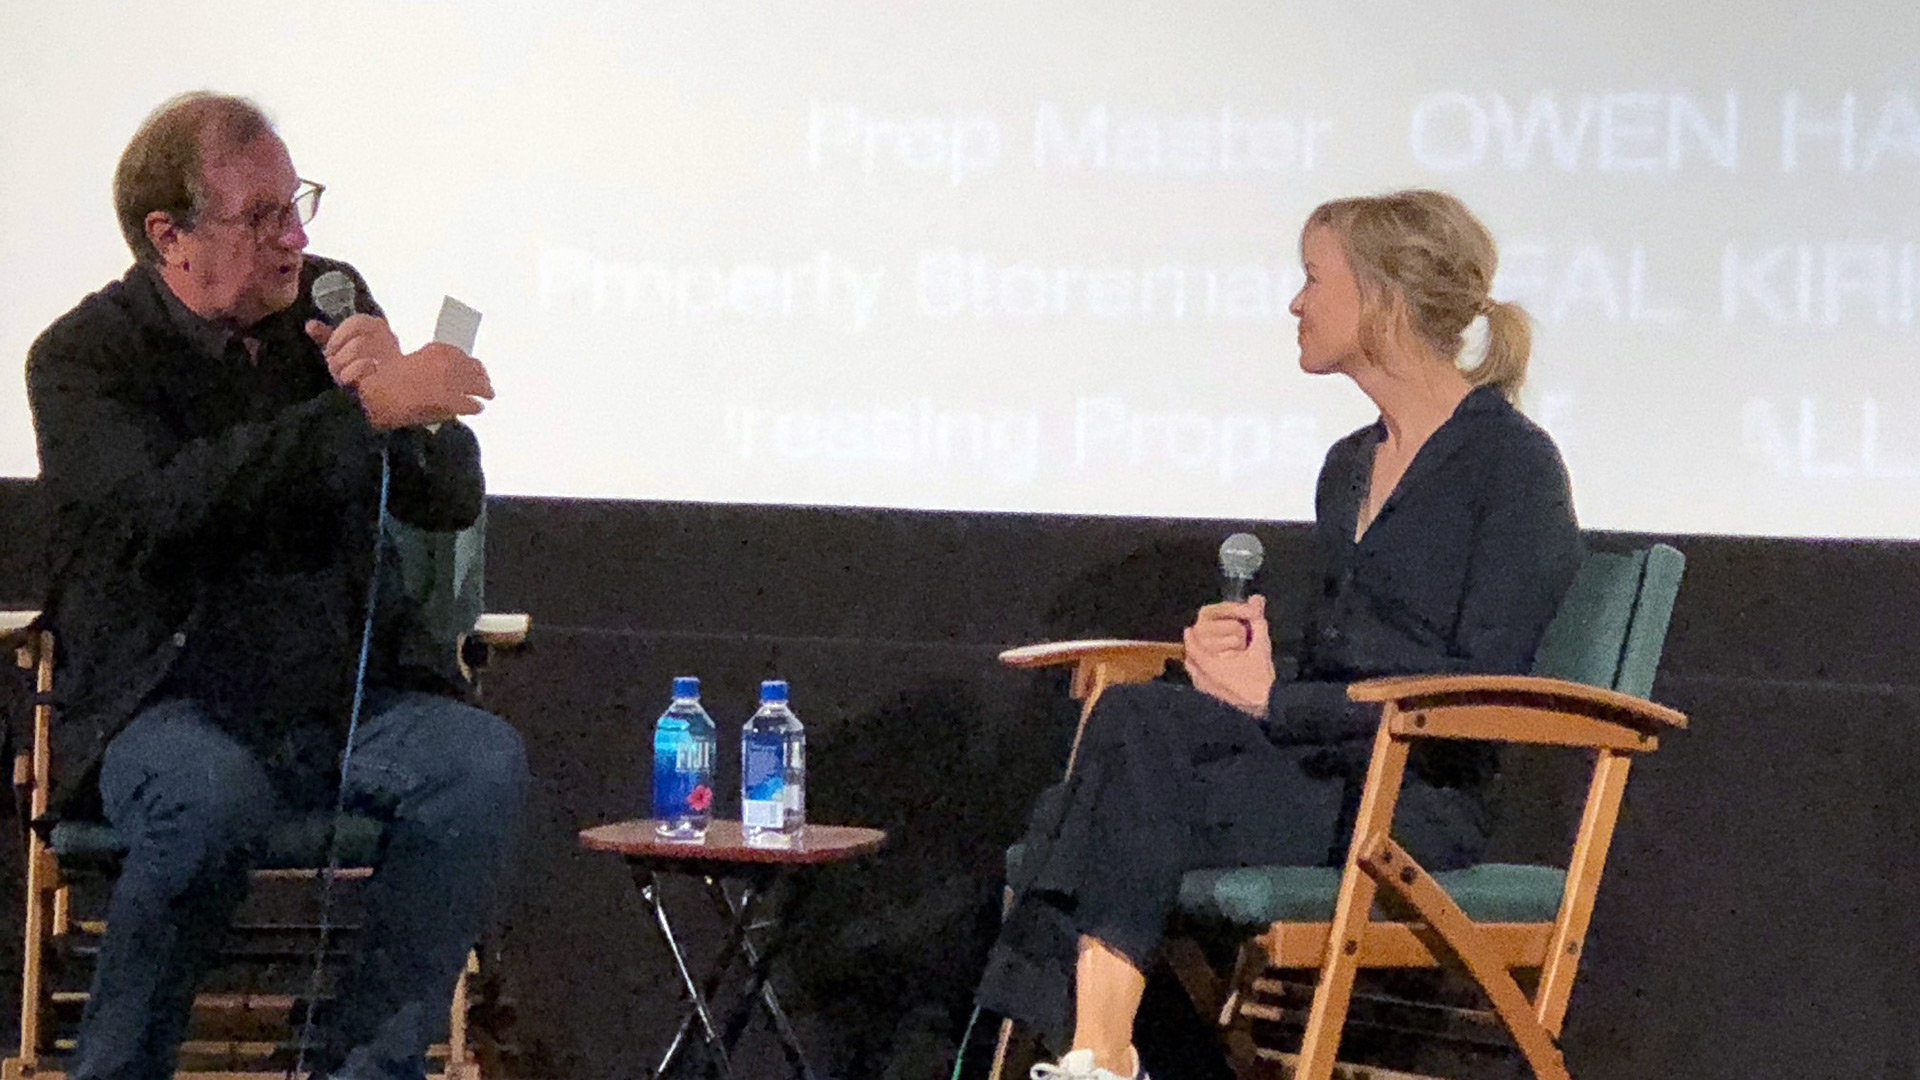 Post screening Q&A with Pete Hammond and Renee Zellweger